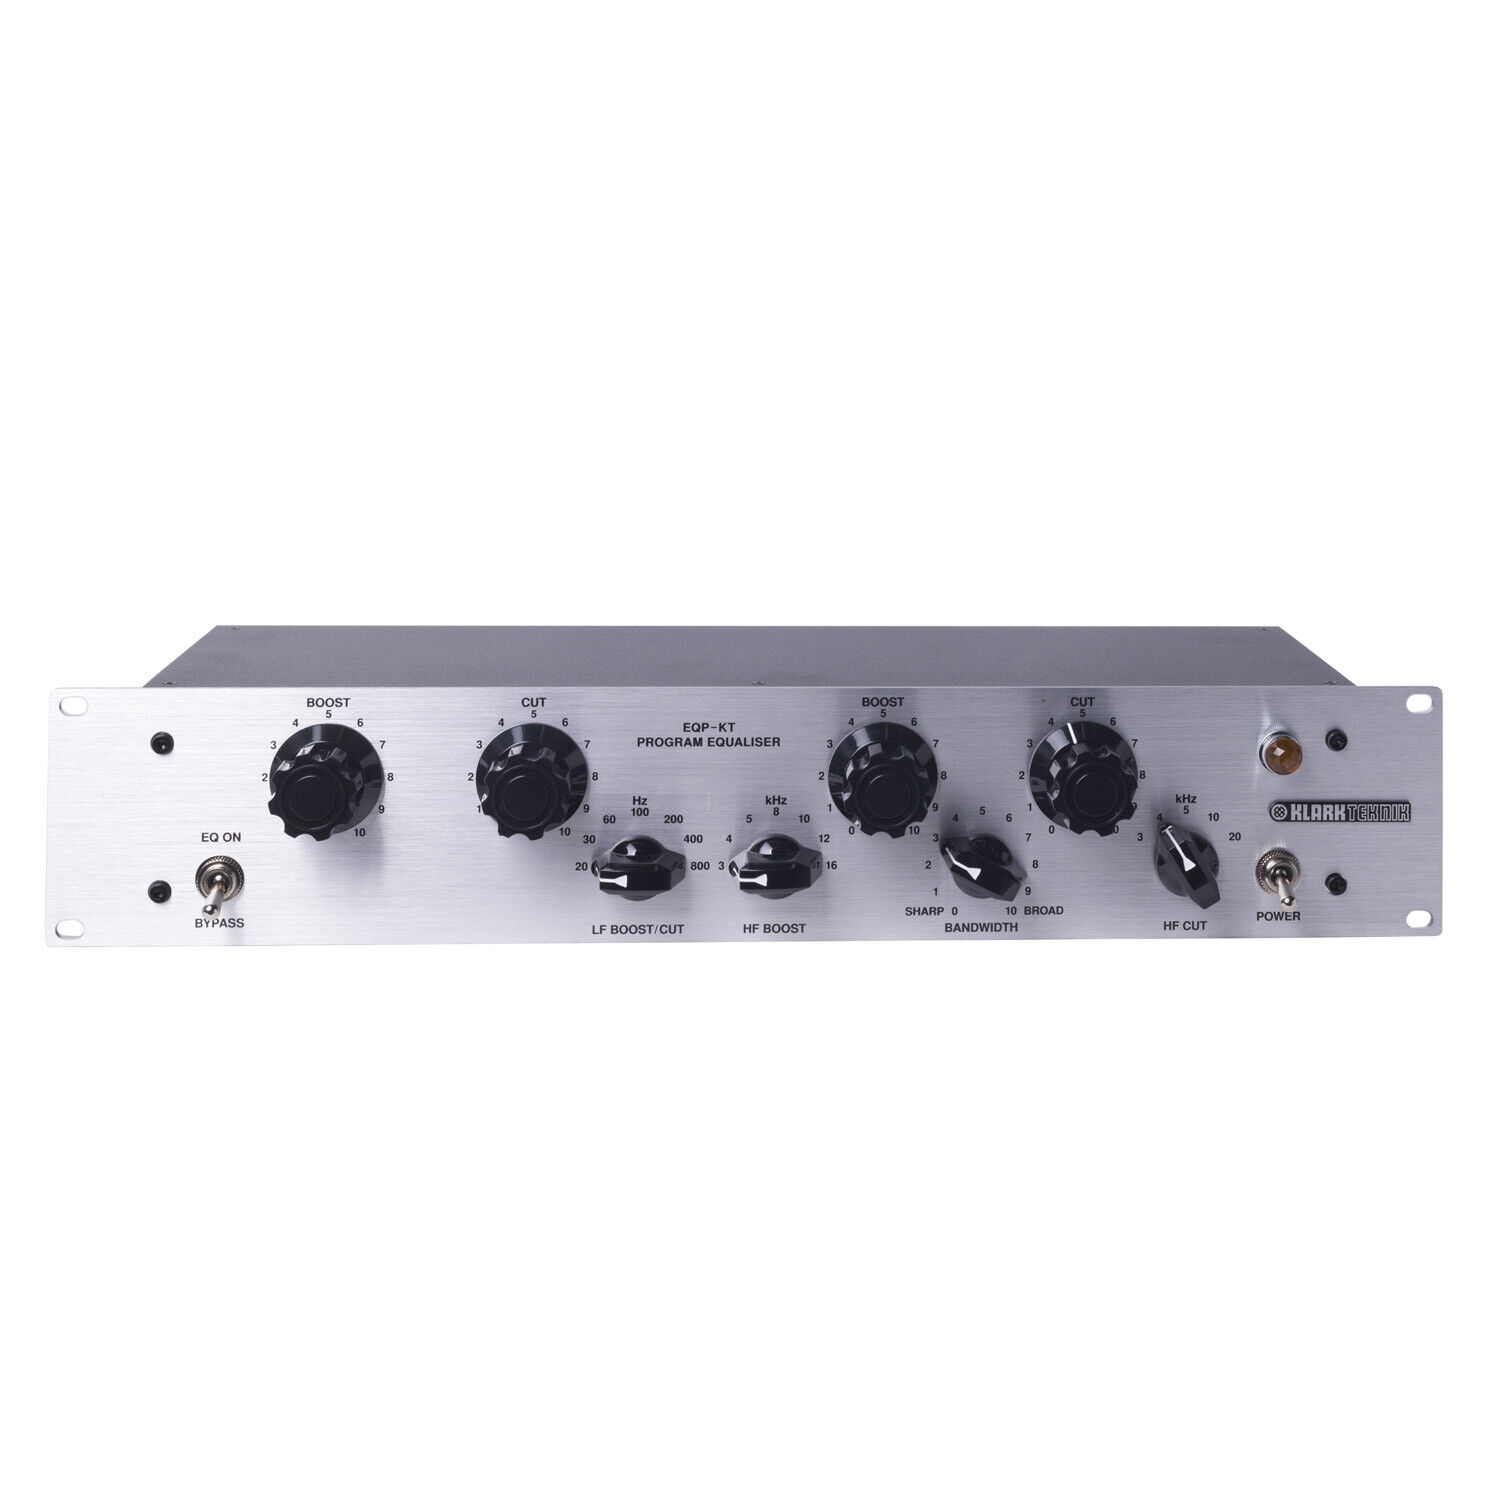 Klark Teknik EQP-KT Single-Channel 2-Band Equalizer and Midas Transformers. Buy it now for 238.00